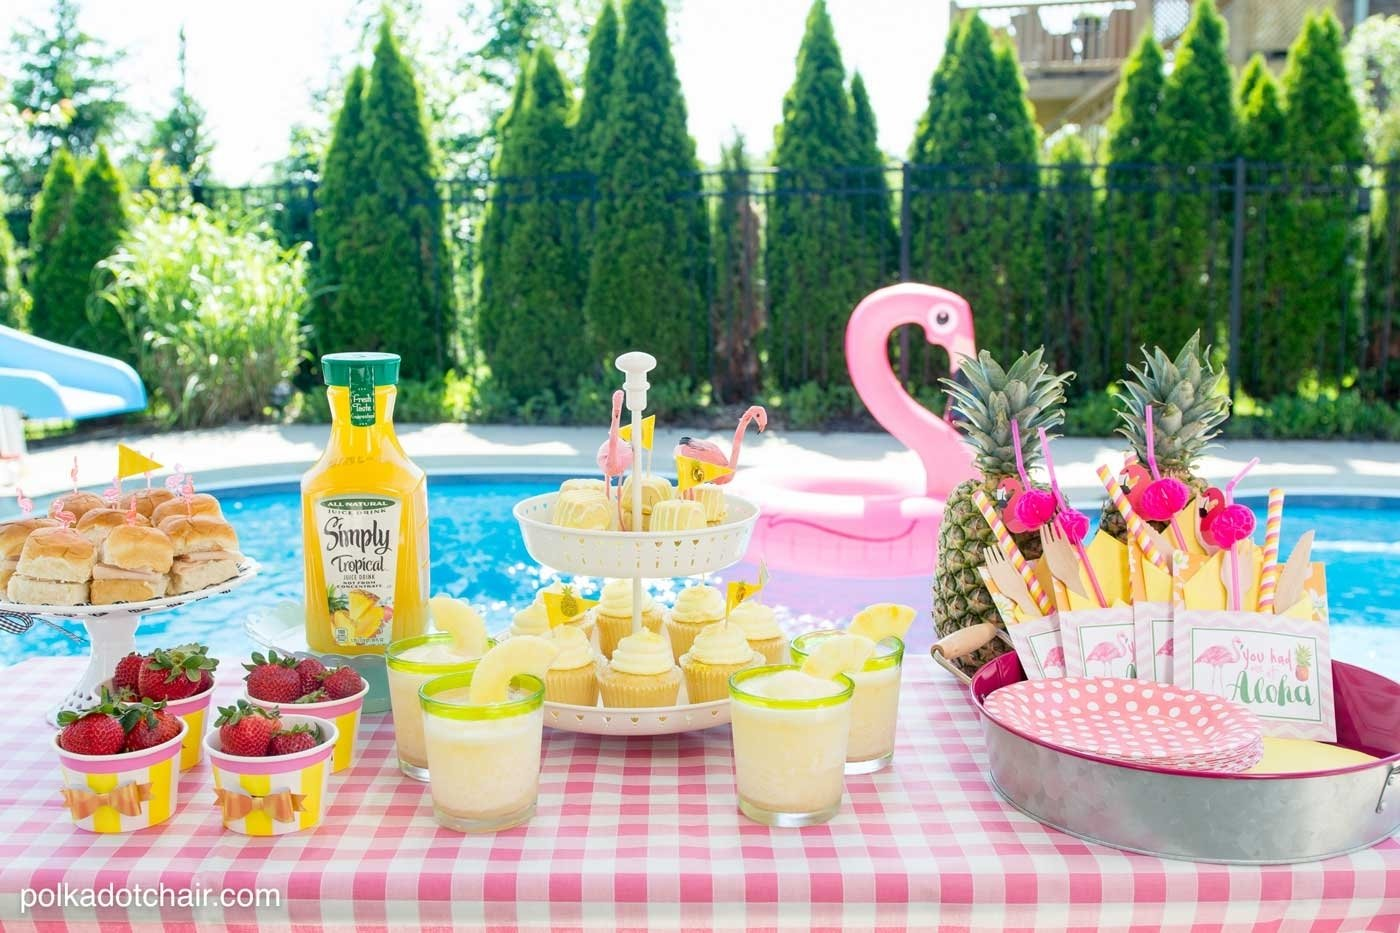 10 Fabulous Pool Party Ideas For Teenagers summer backyard flamingo pool party ideas the polka dot chair 1